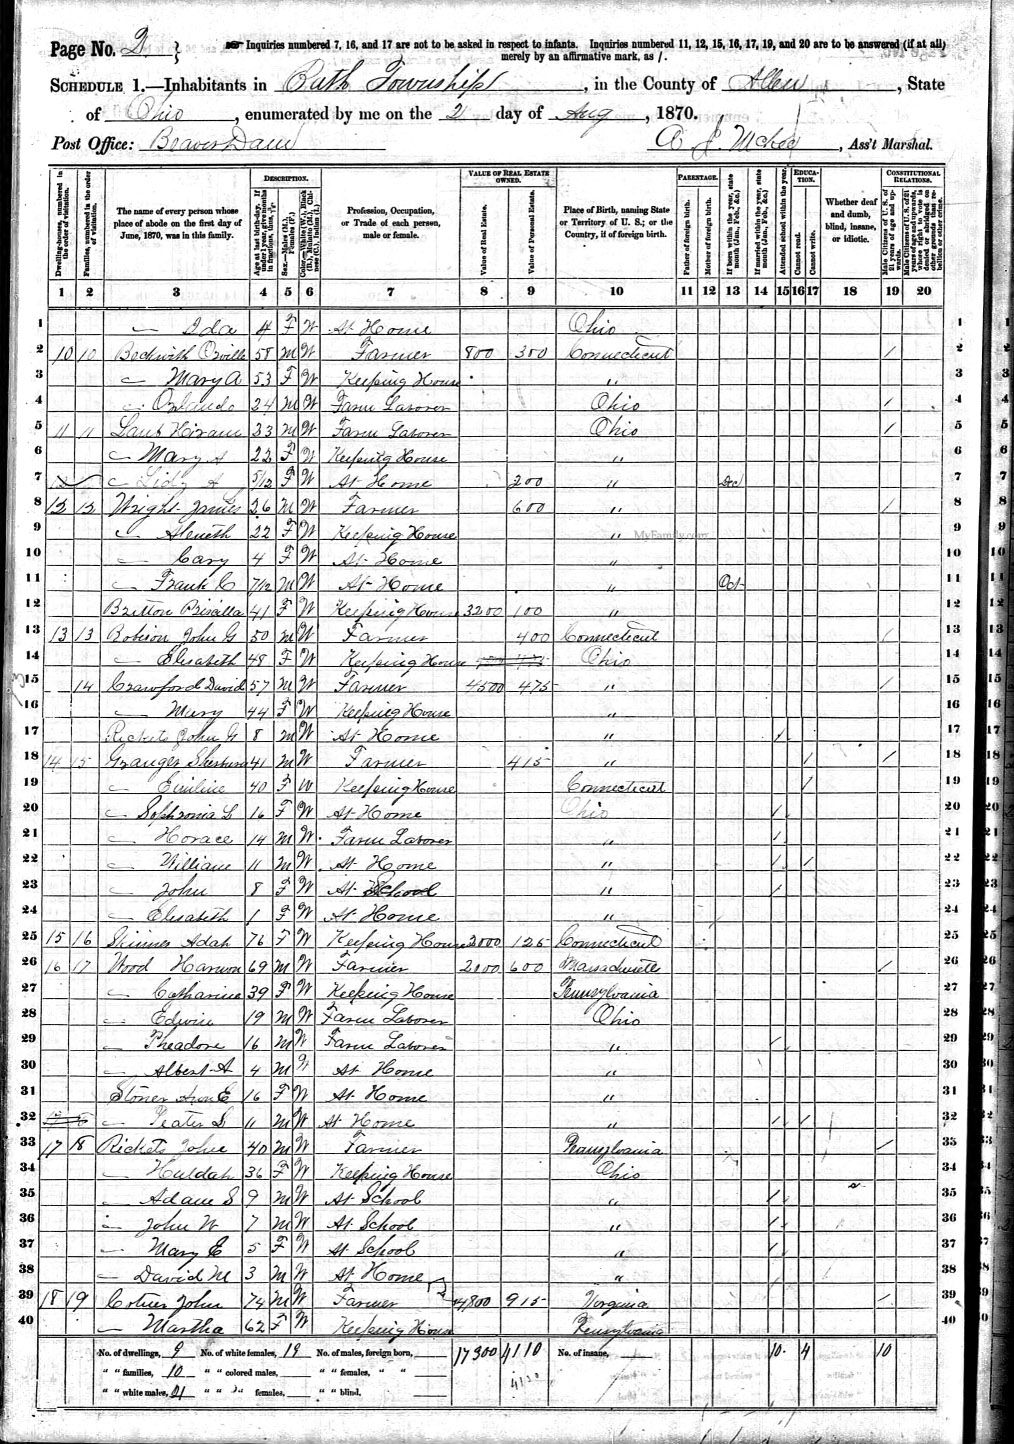 Ohio Death Certificate Blank Forms - Subscription sites are not the ...